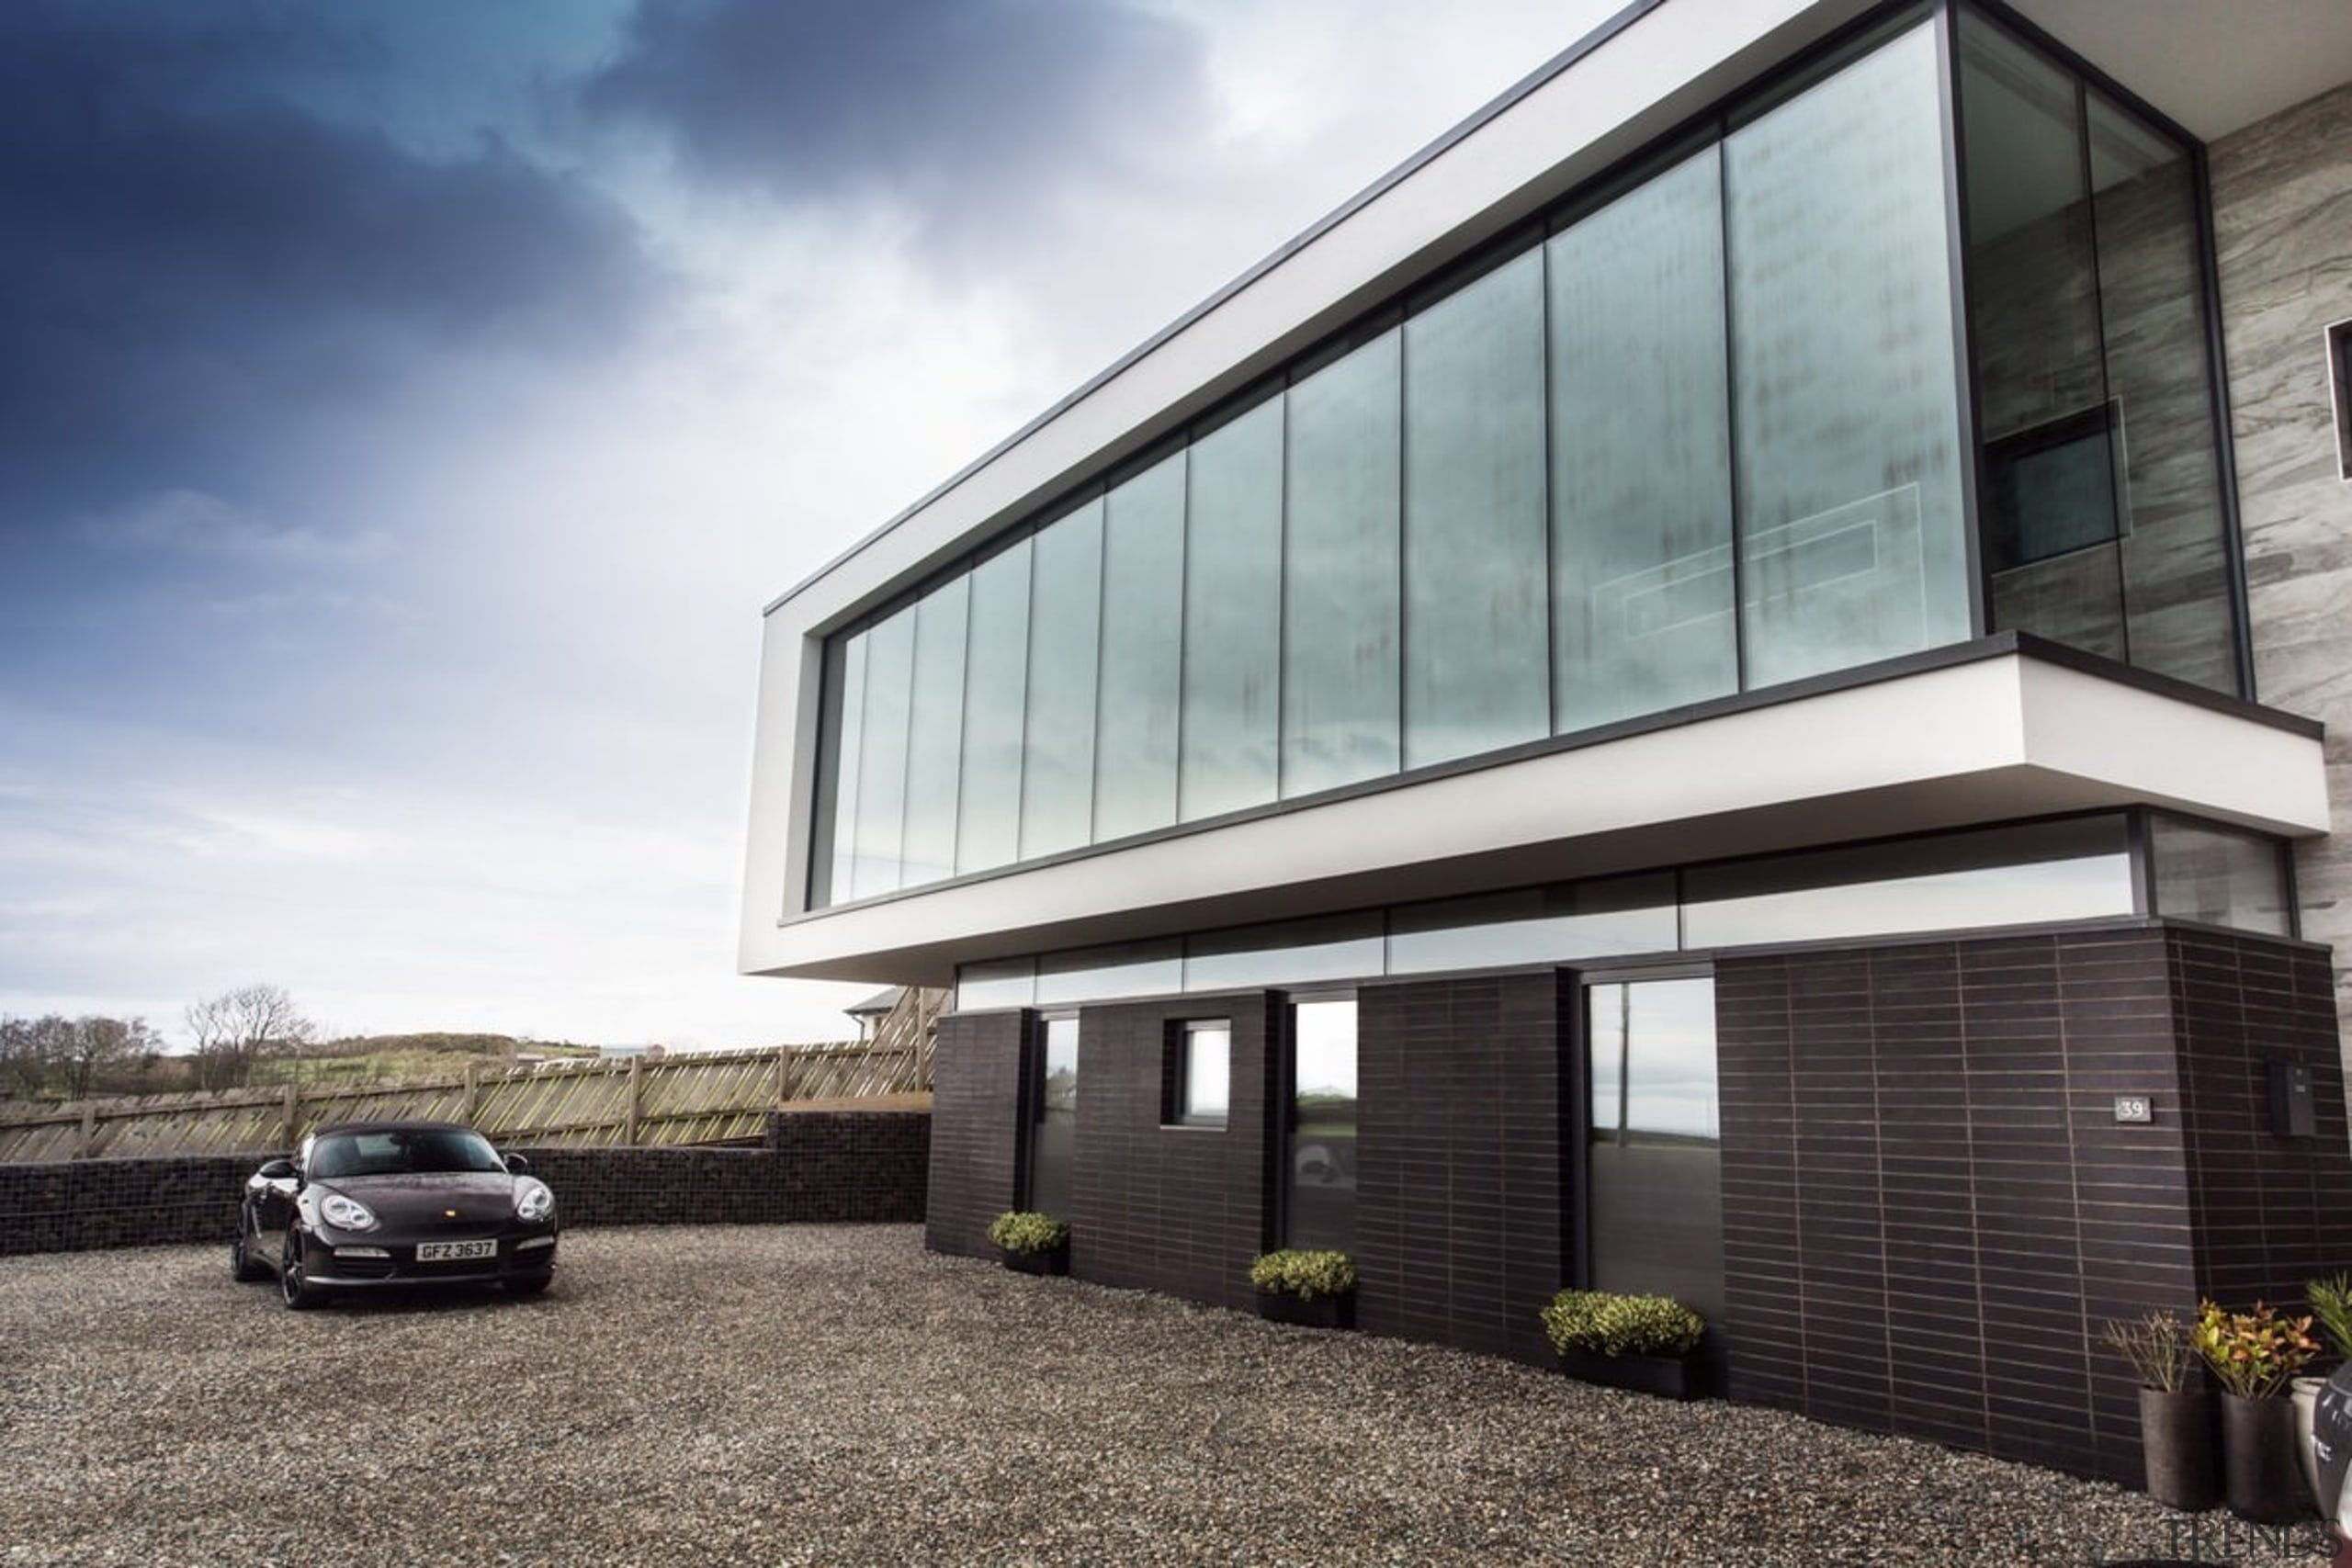 Architect: 2020 ArchitectsPhotography by Reinis Babrovskis architecture, building, corporate headquarters, facade, family car, home, house, luxury vehicle, property, real estate, siding, window, gray, white, black